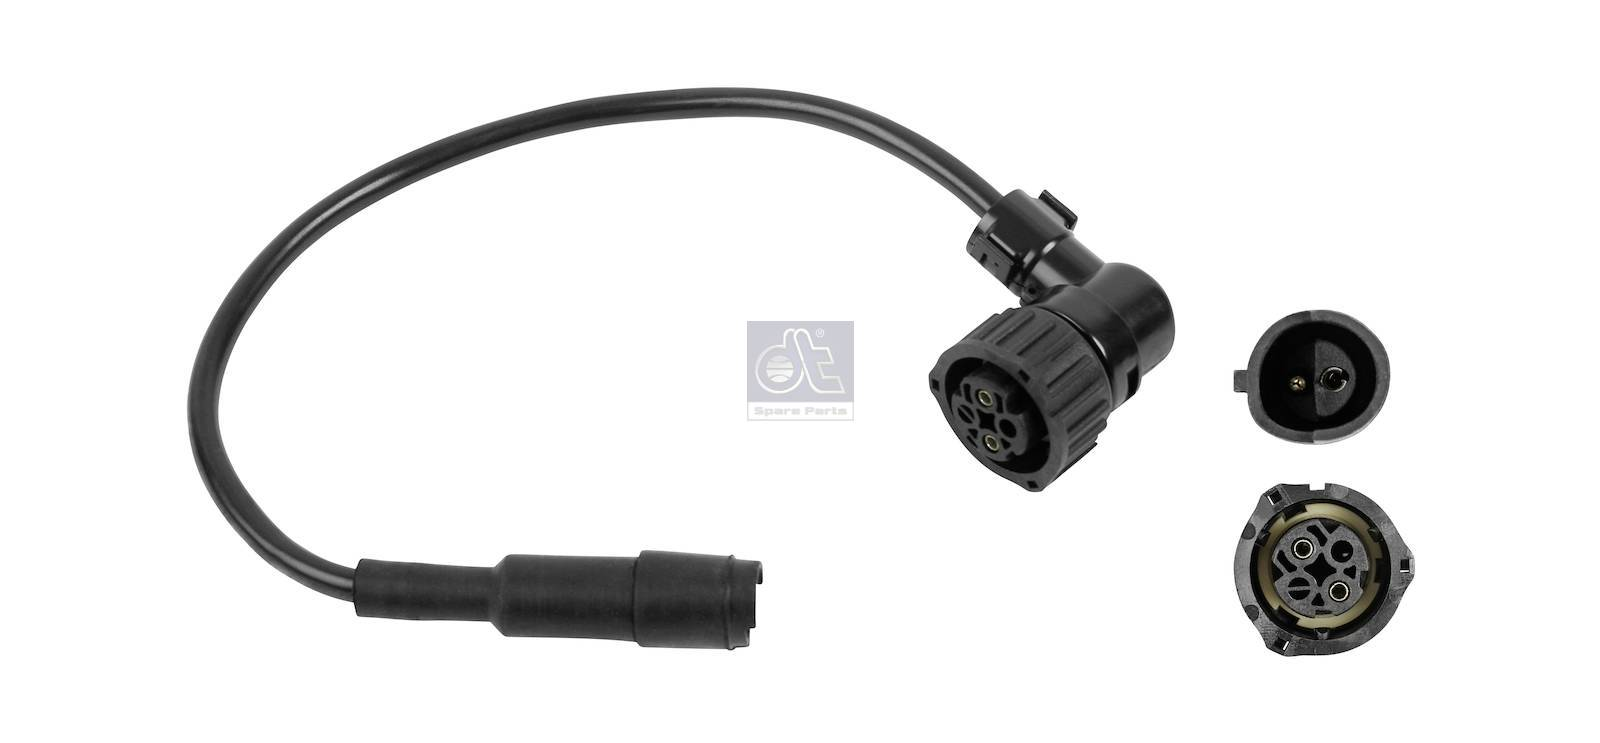 Adapter cable, fuel level sensor